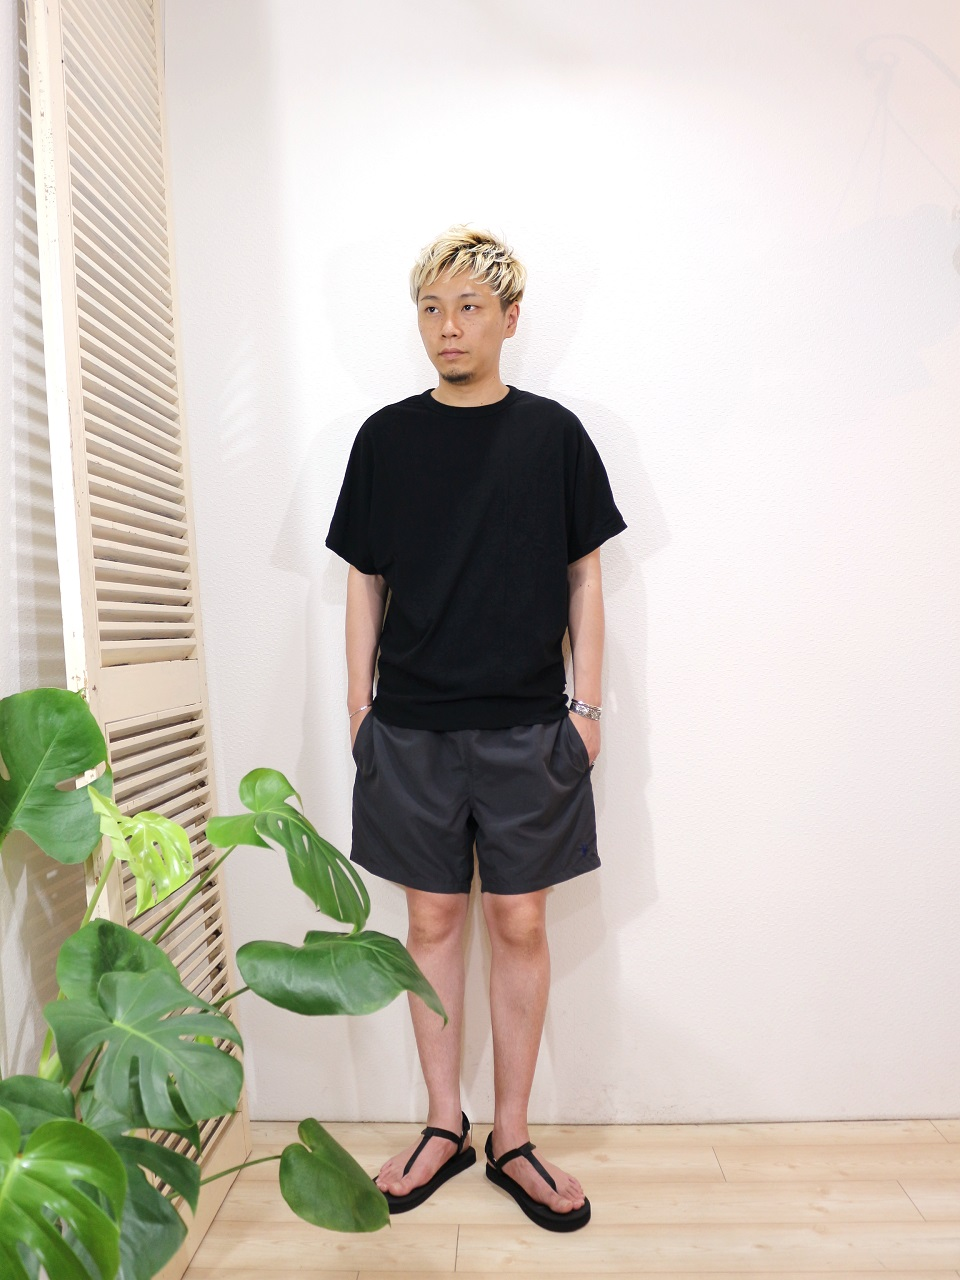 tee/melple-Salt Creek ドルマンクルーS/S(SIZE S)pants/melple-Lotus ショーツ(SIZE S)shoes/SUICOKE-COKO(US 8)を使ったコーディネート